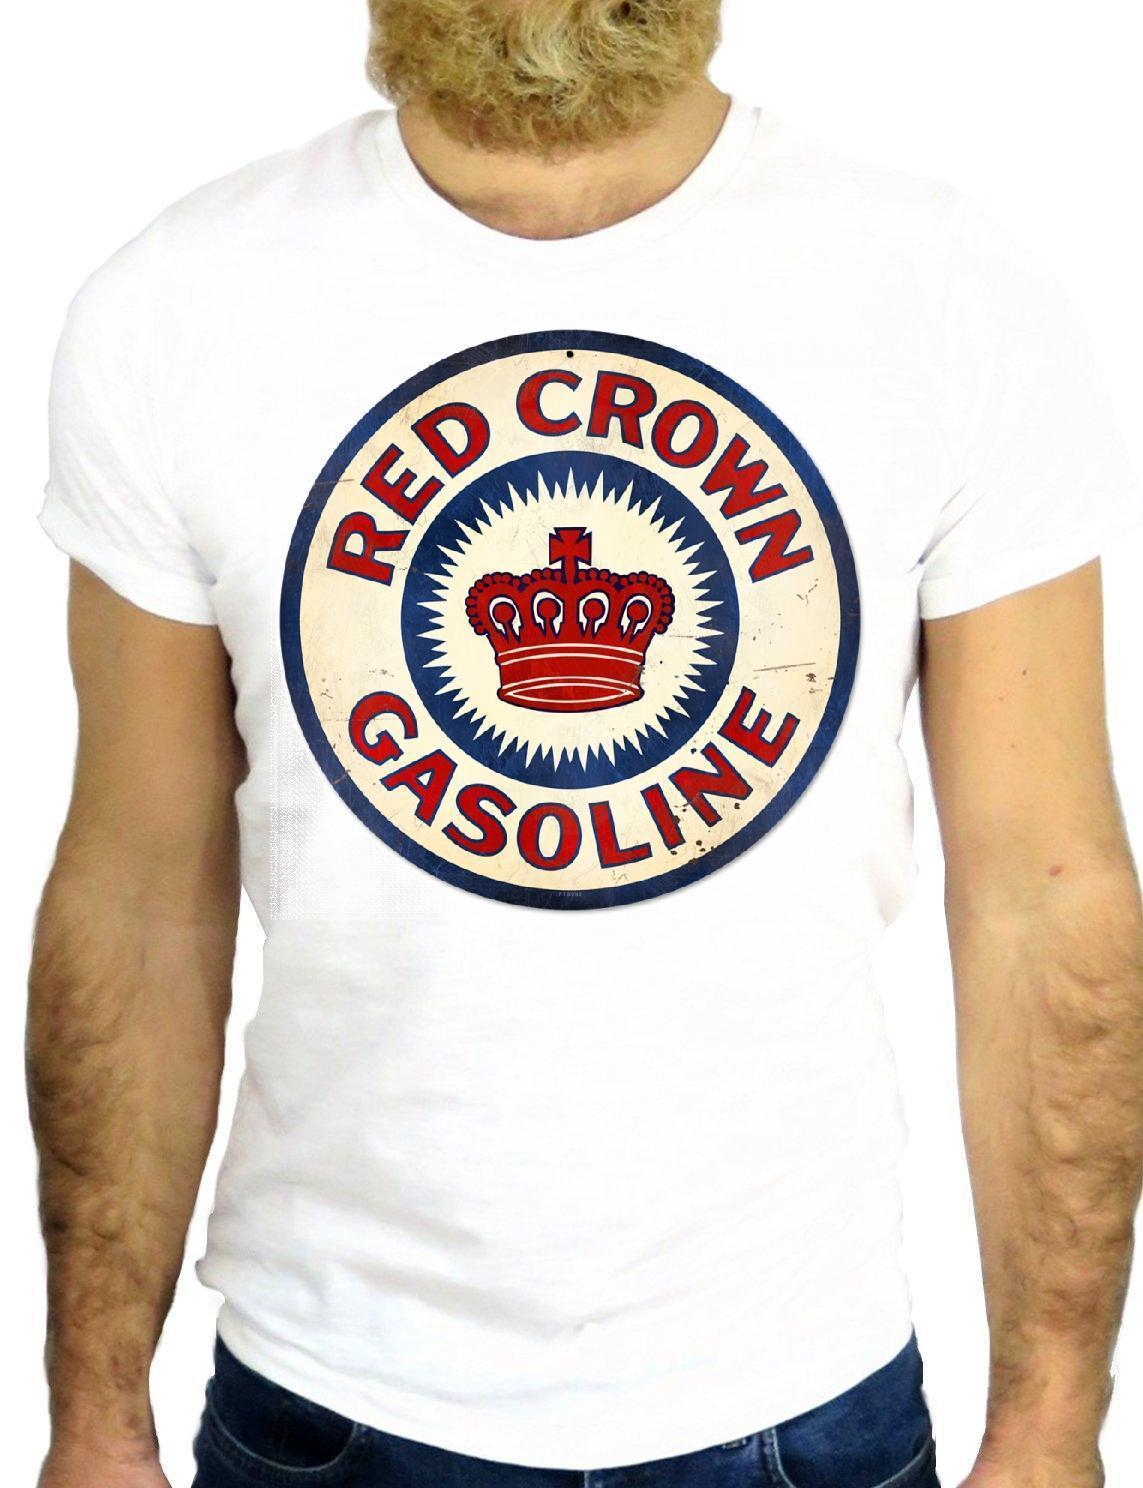 38a14d8bea4f99 T SHIRT JODE Z1295 CROW GASOLINE LOGO VINTAGE RED NICE COOL AMERICA NEW  YORK GGG T Shirts Design Designer T Shirts From Crazytshirts30